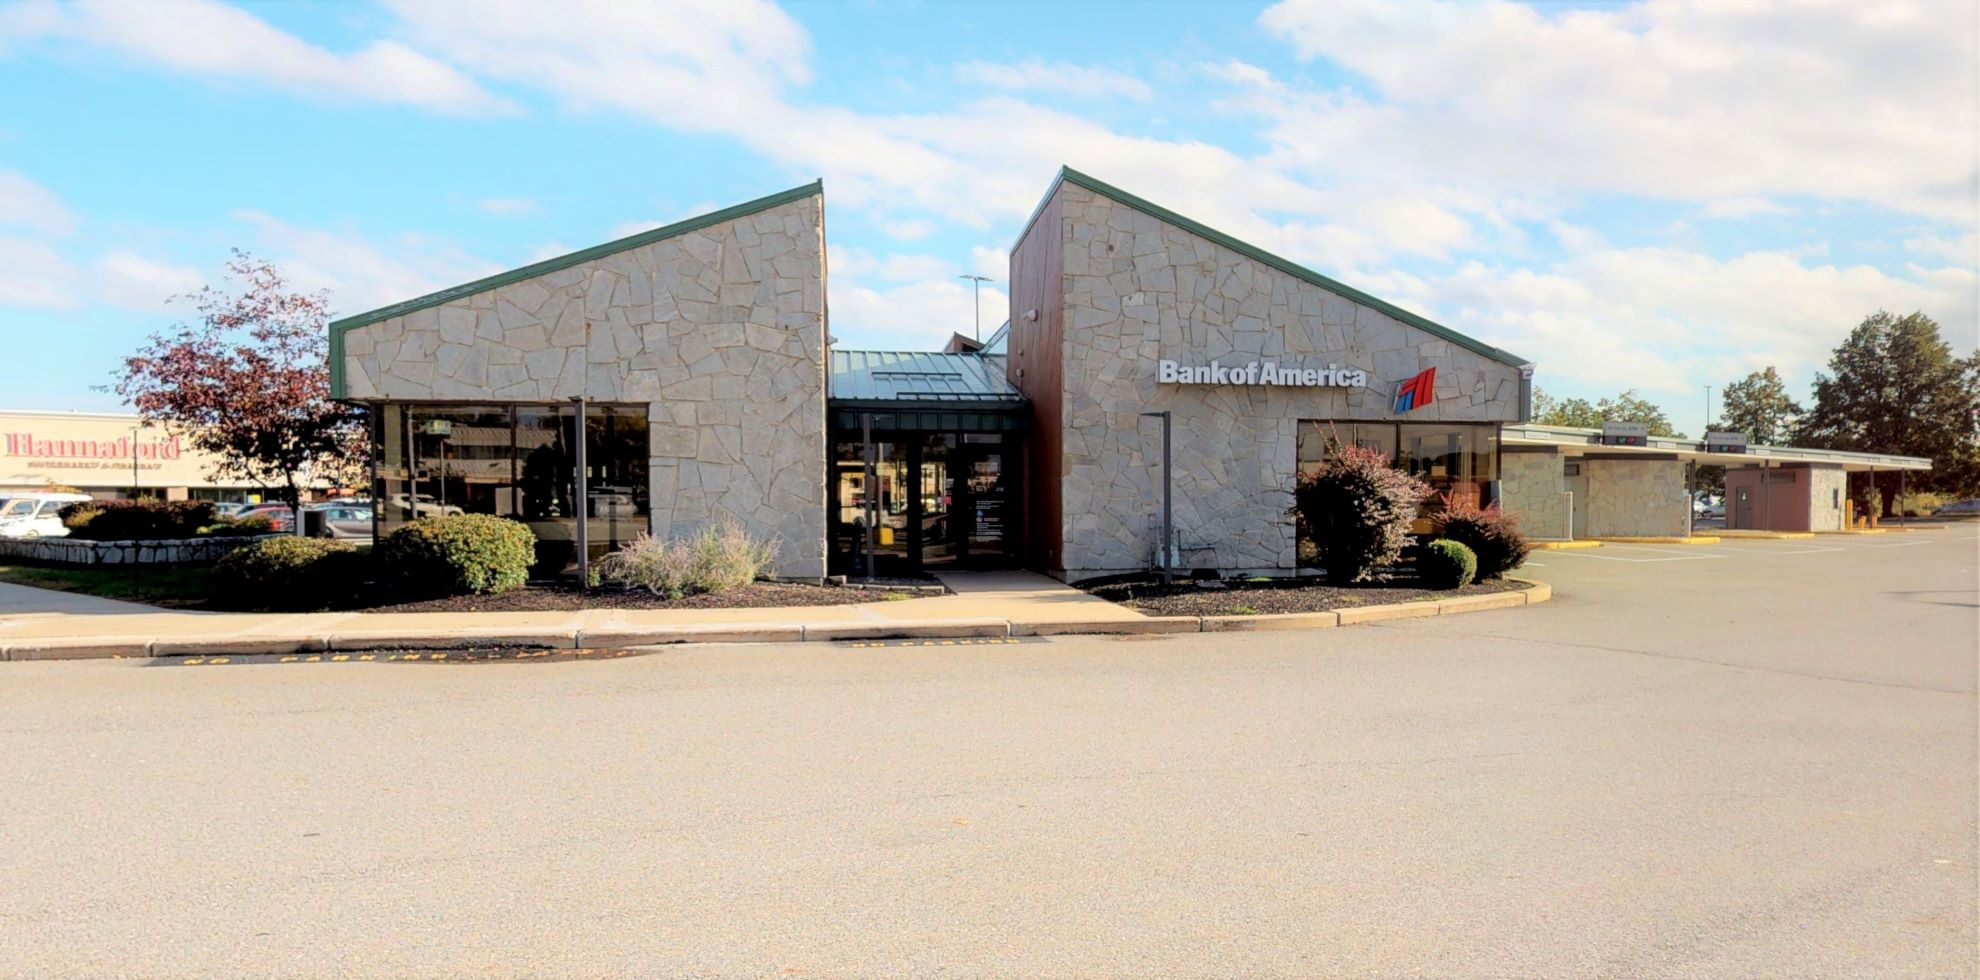 Bank of America financial center with drive-thru ATM   425 Philbrook Ave, South Portland, ME 04106